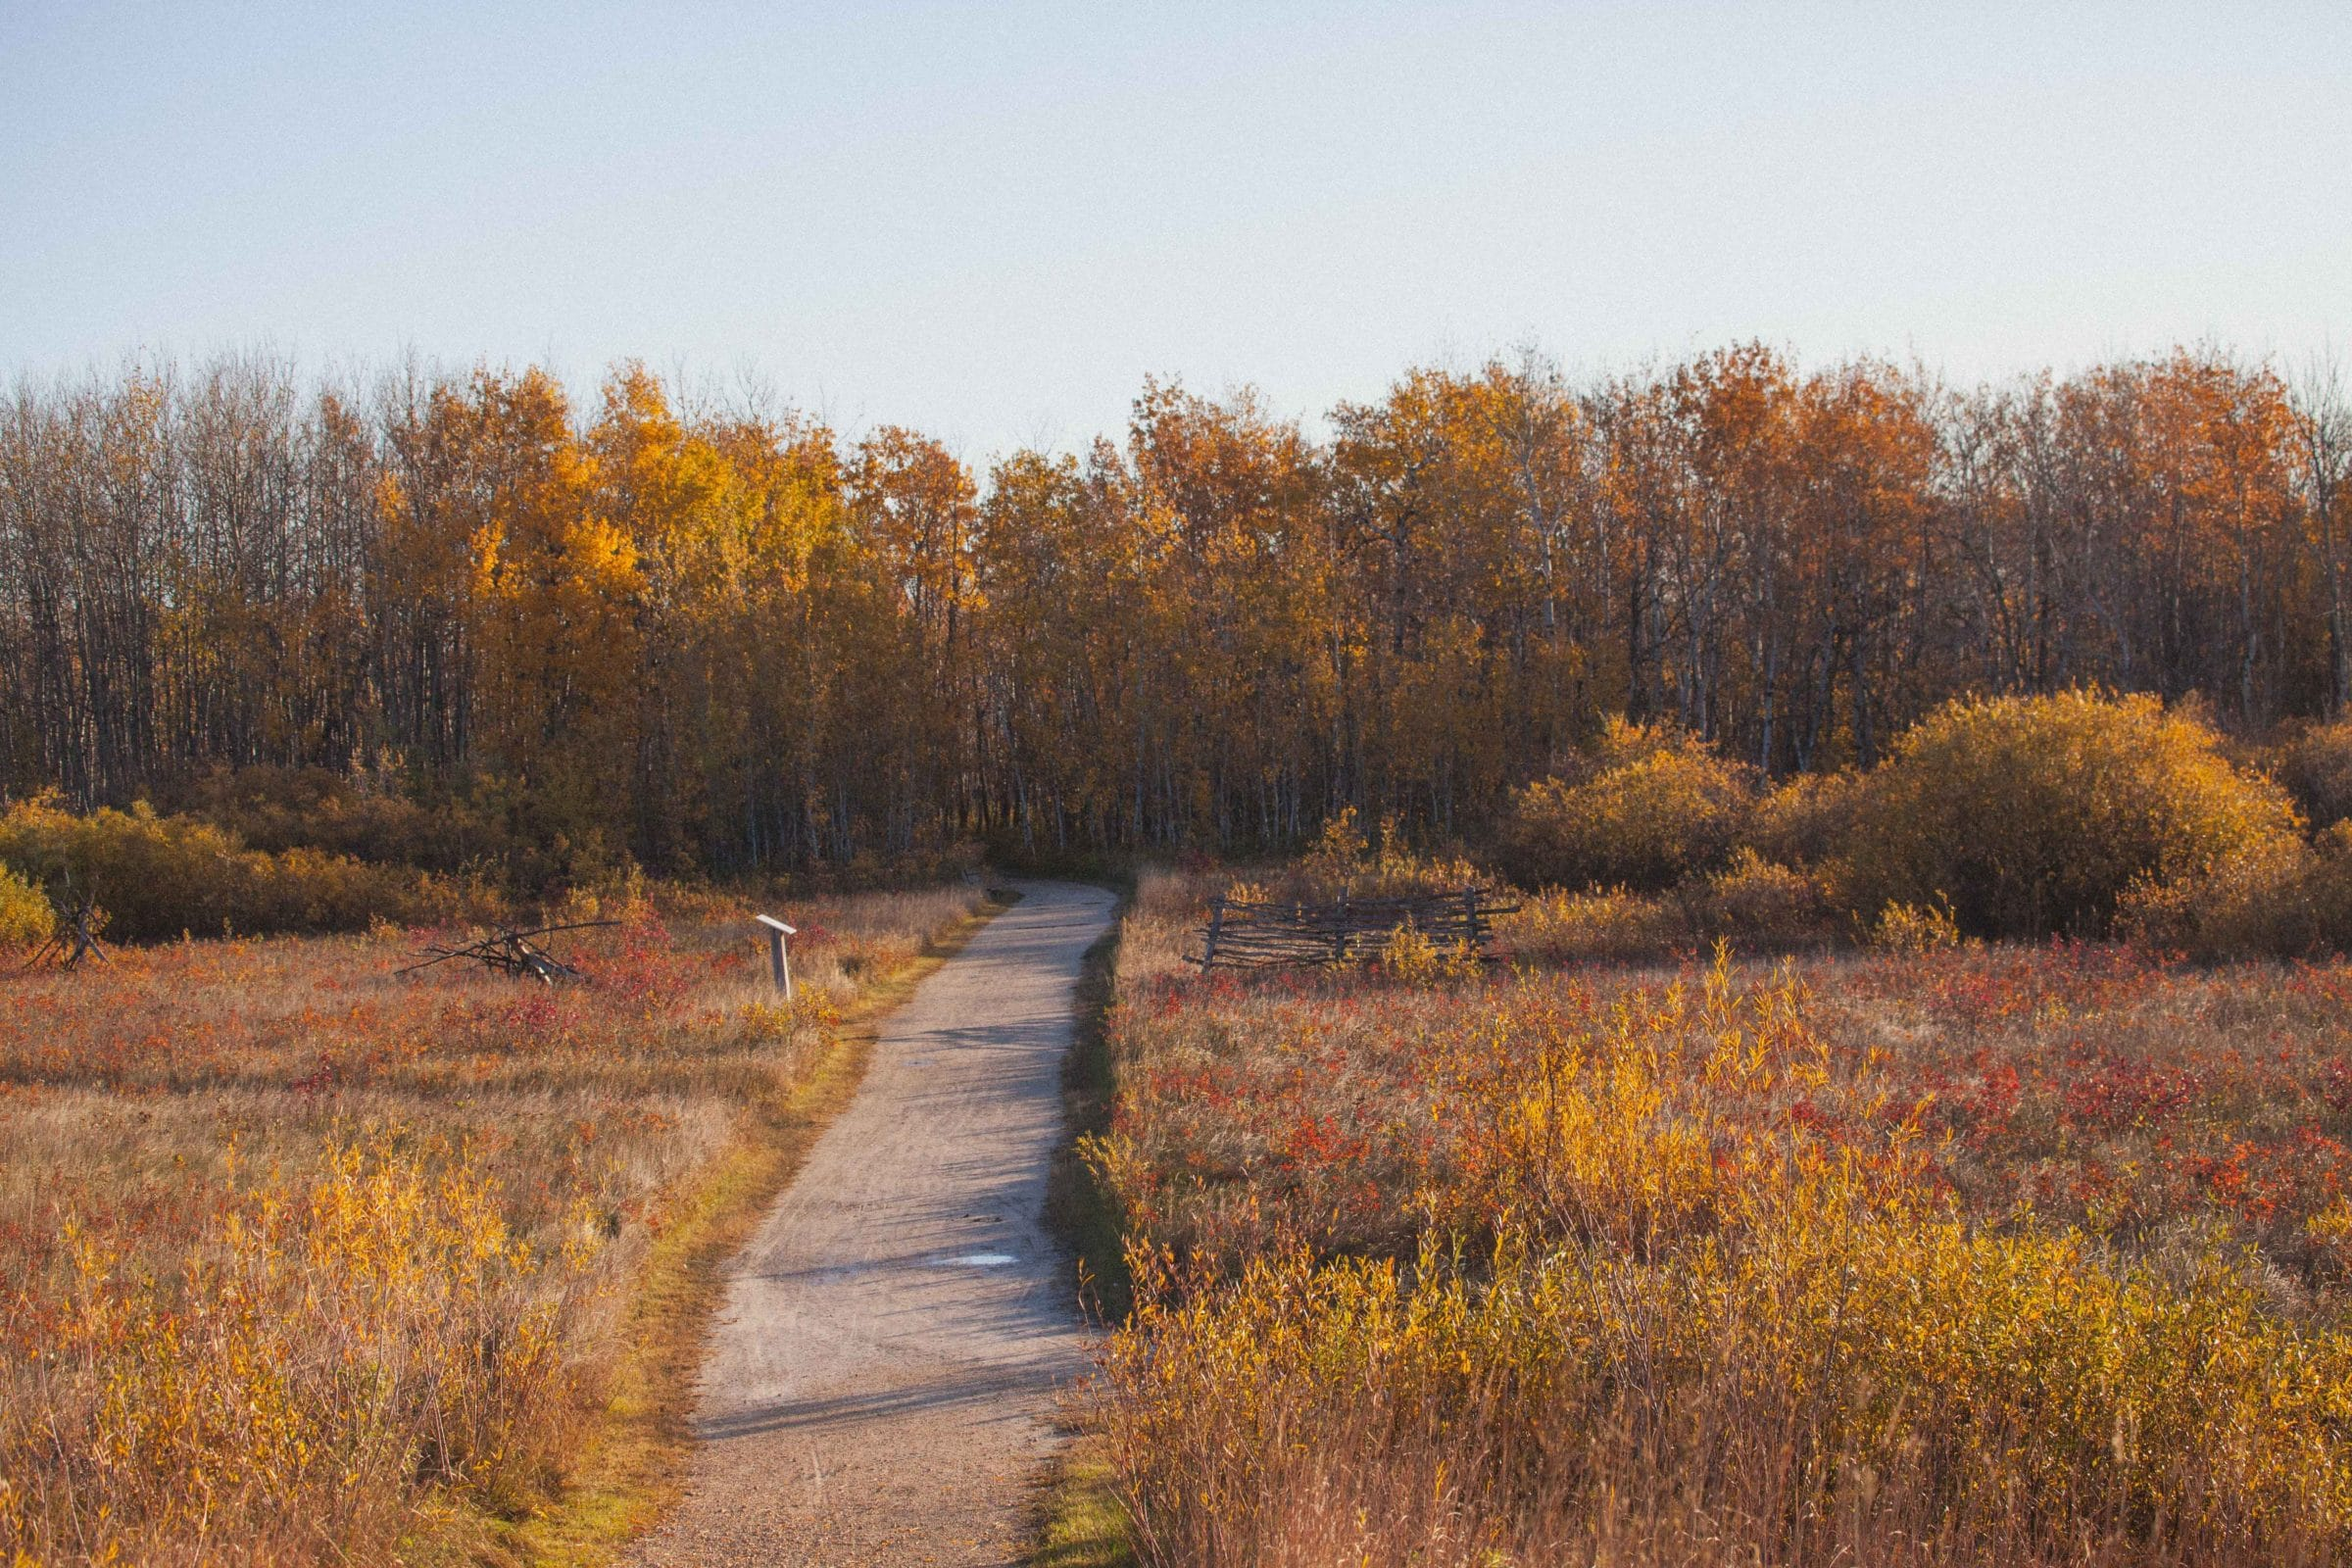 Wide shot of a trail going into a yellow and orange forest in autumn.